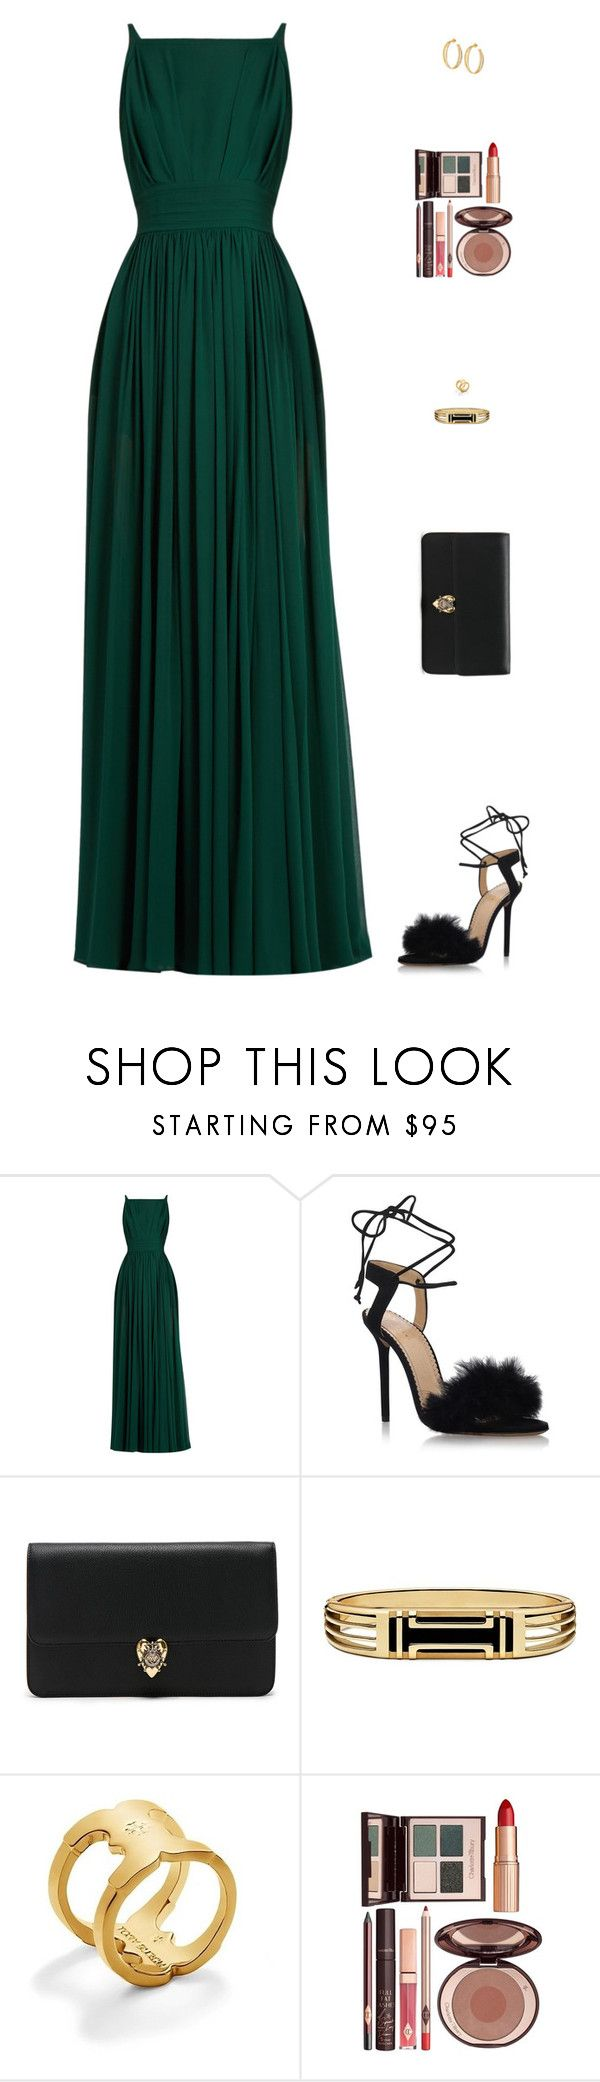 """Sin título #4857"" by mdmsb on Polyvore featuring moda, Elie Saab, Charlotte Olympia, Alexander McQueen, Tory Burch y Charlotte Tilbury"